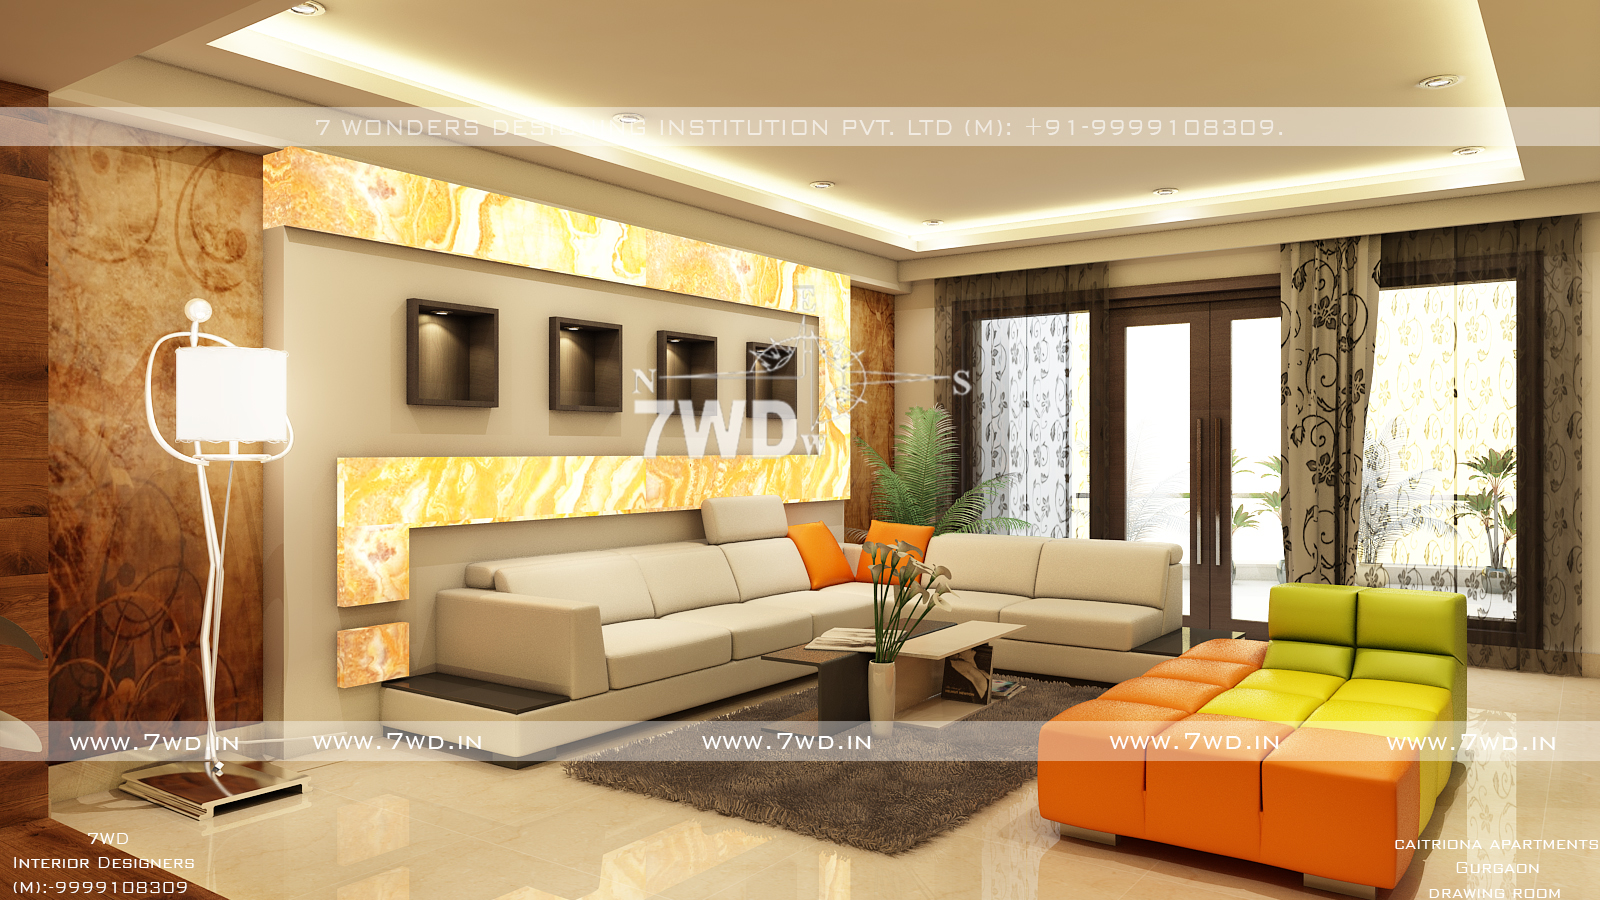 Interior design for residential house for Residential interior designs